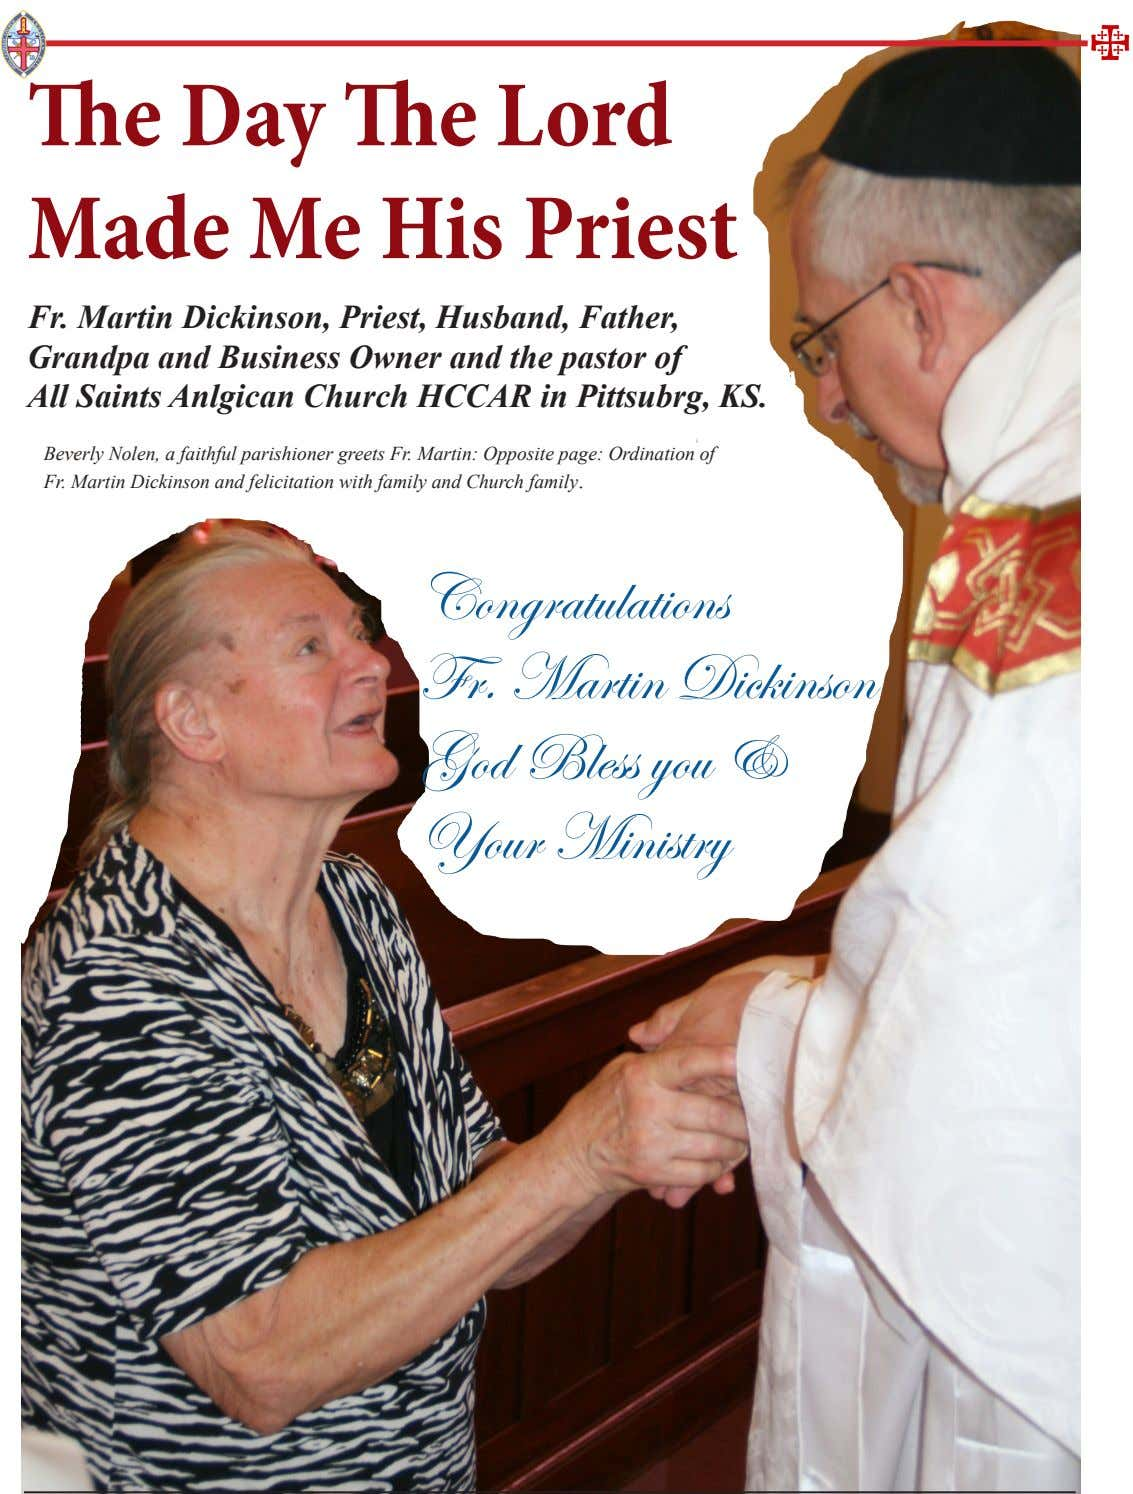 The Day The Lord Made Me His Priest Fr. Martin Dickinson, Priest, Husband, Father, Grandpa